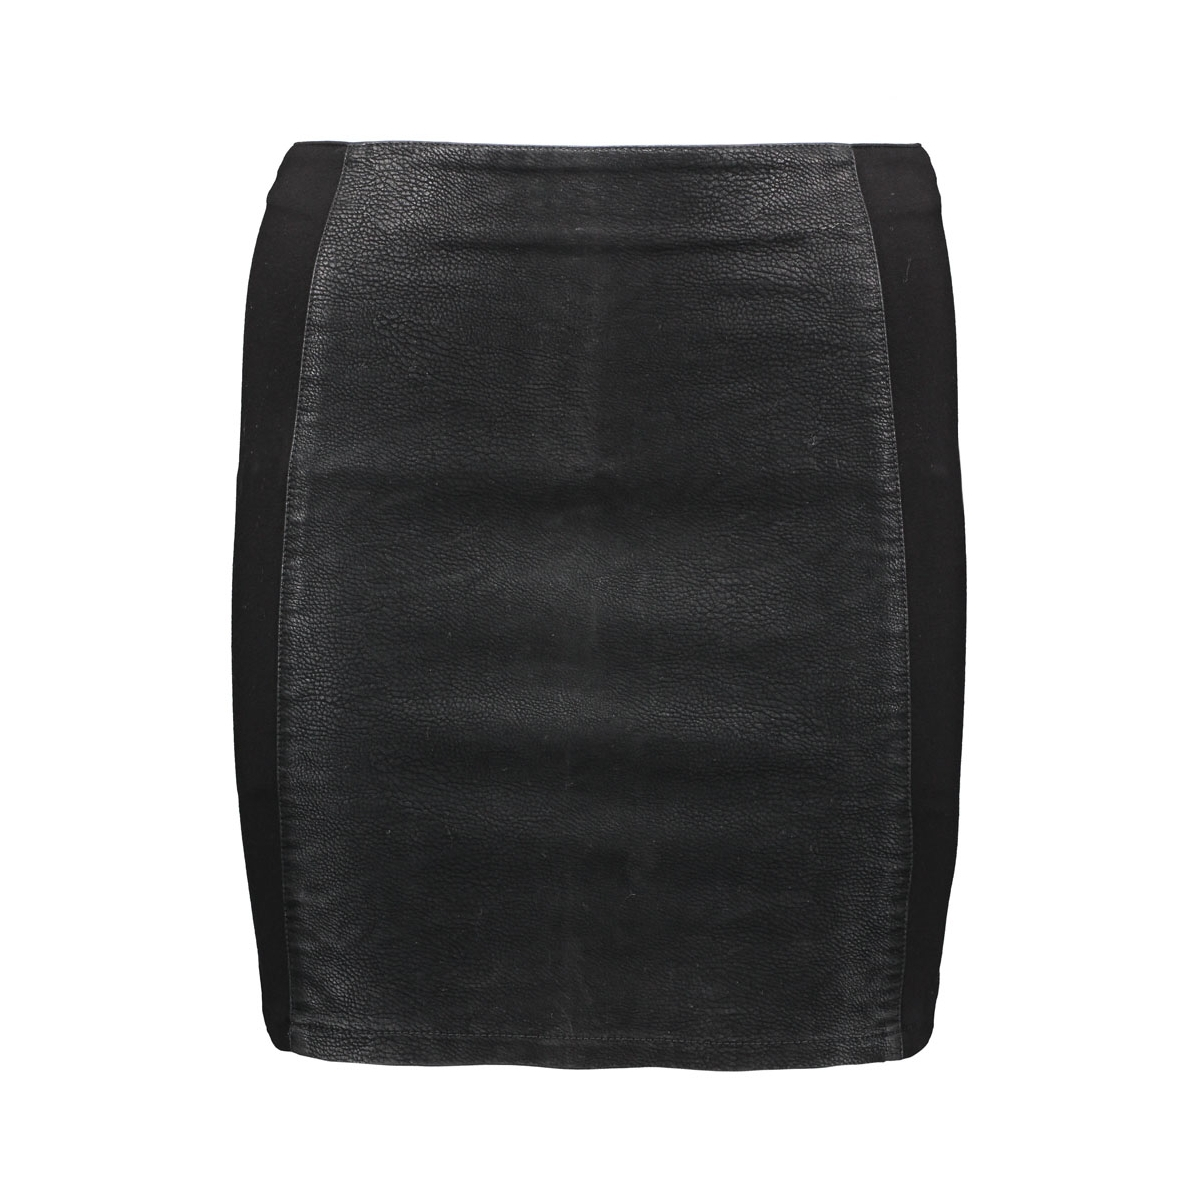 onleffort mix faux leather skirt ot 15121600 only rok black